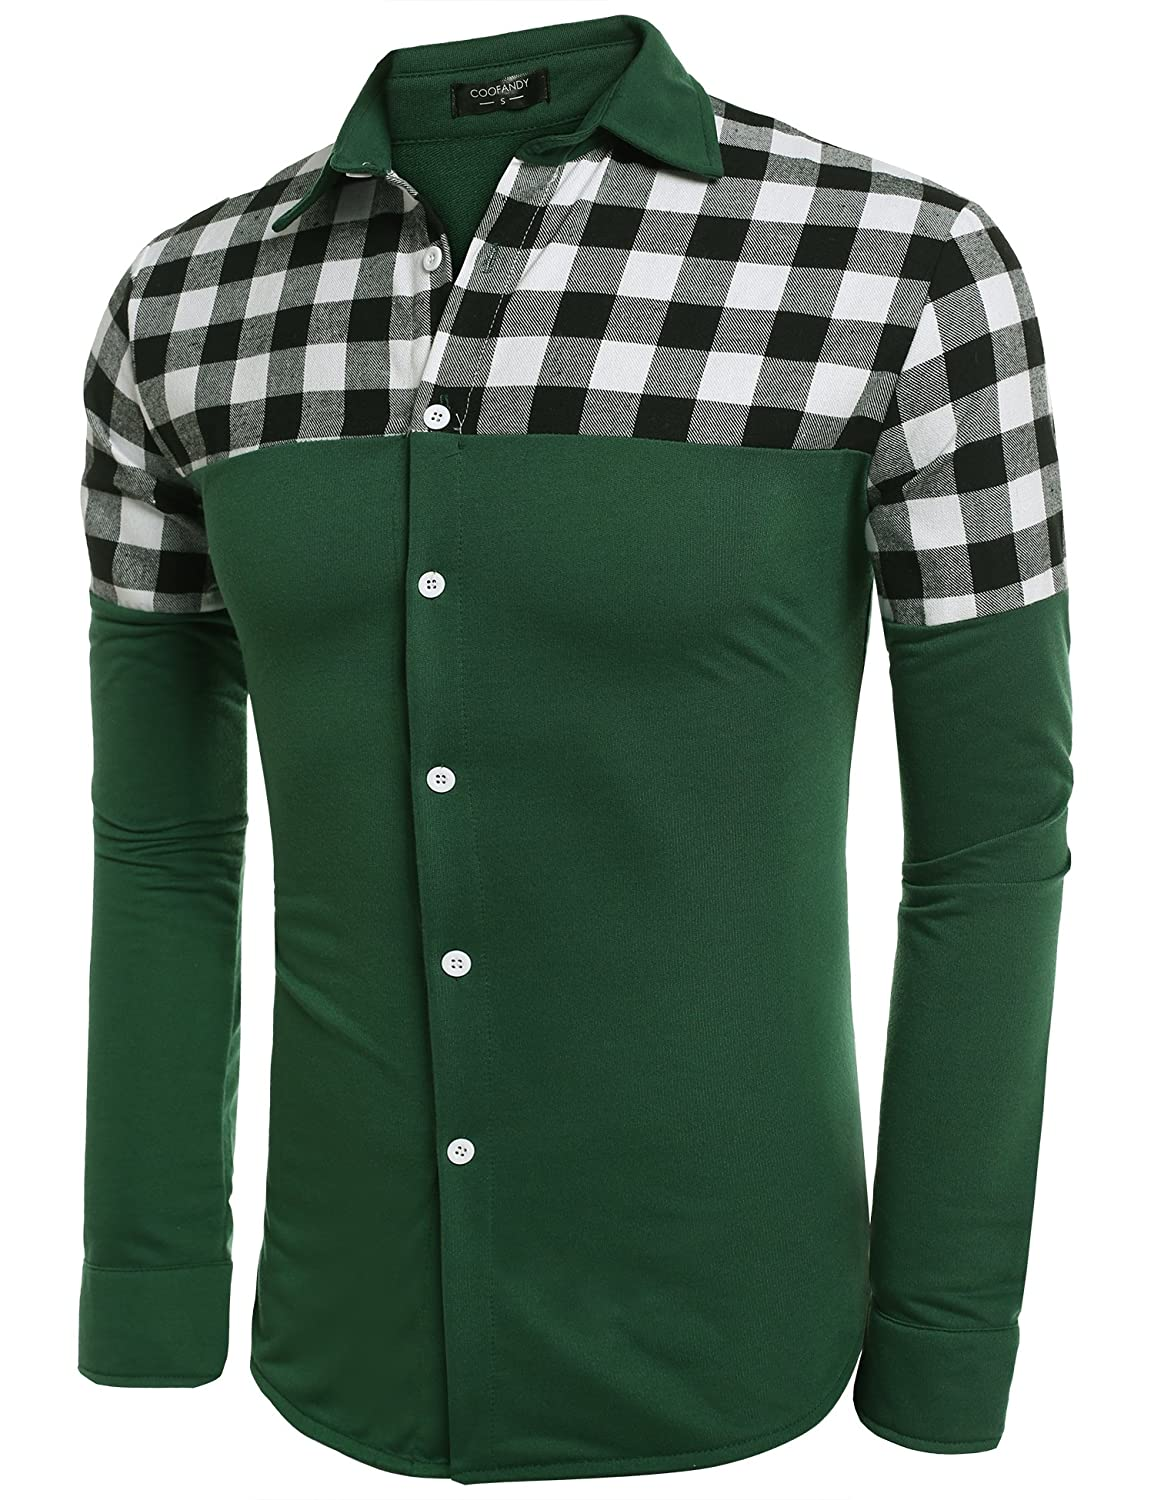 COOFANDY Men's Casual Long Sleeve Plaid Stitching Slim Fit Dress Shirts ZSJ005078